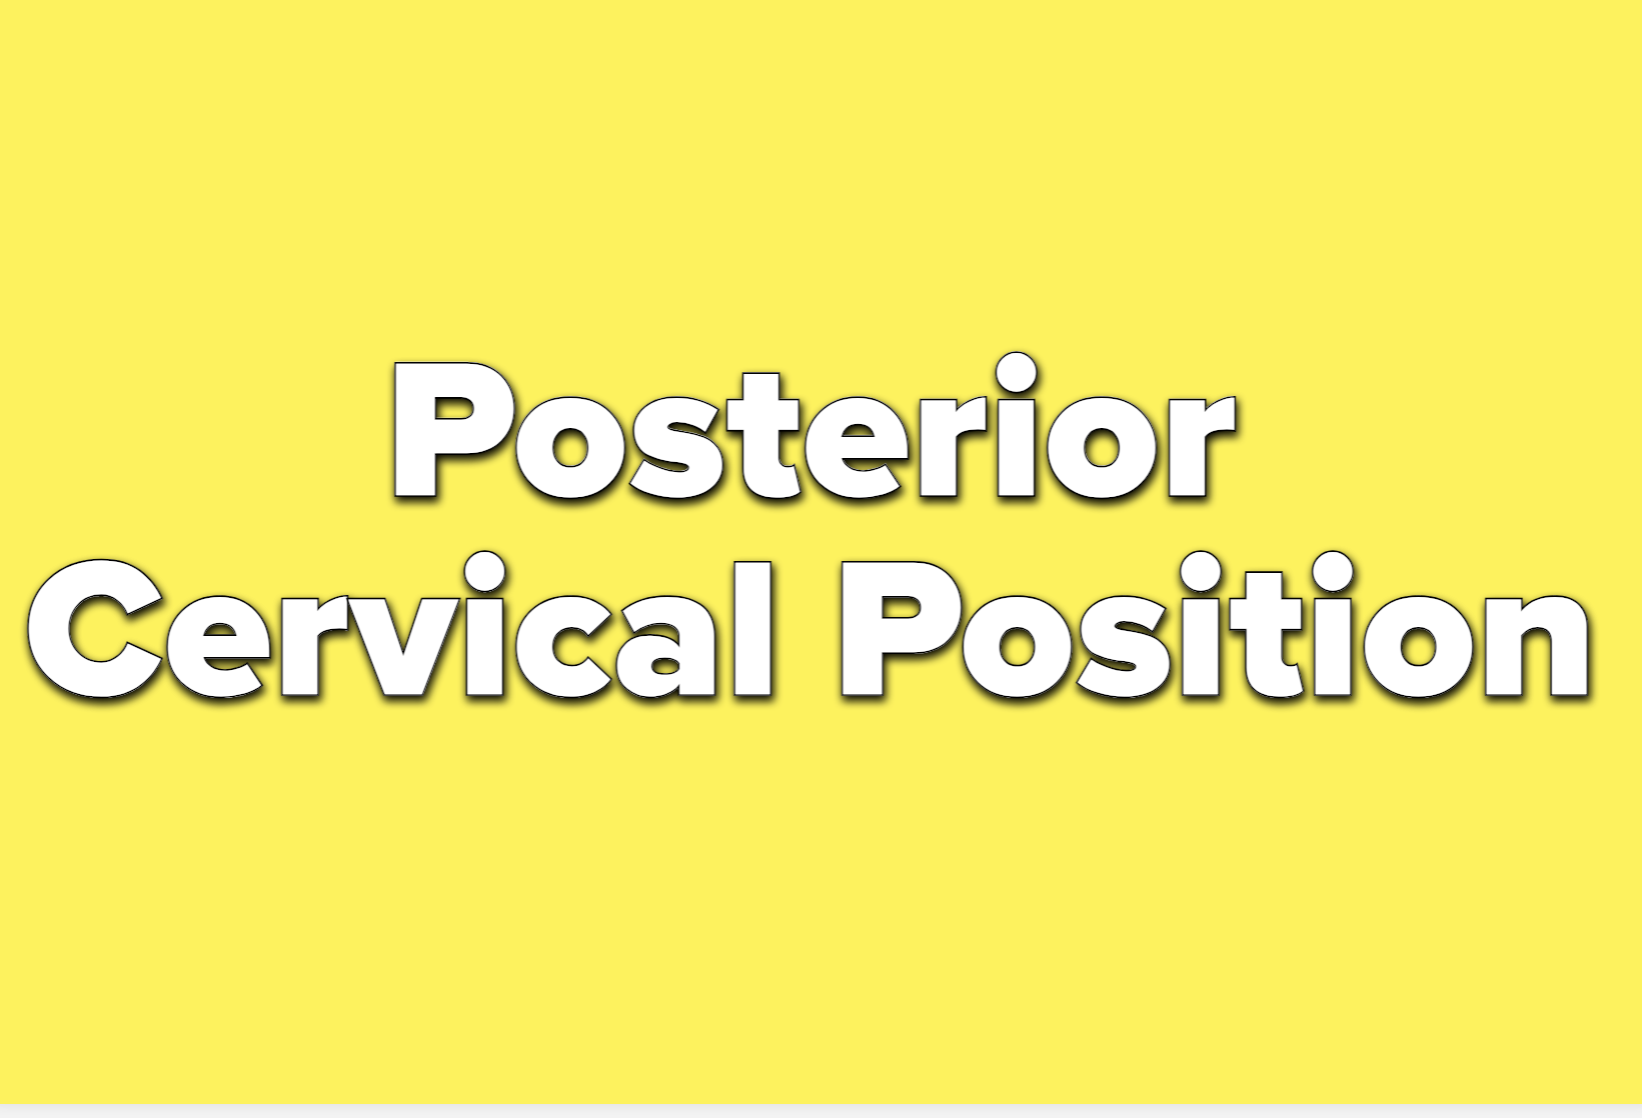 Text reads: posterior cervical position